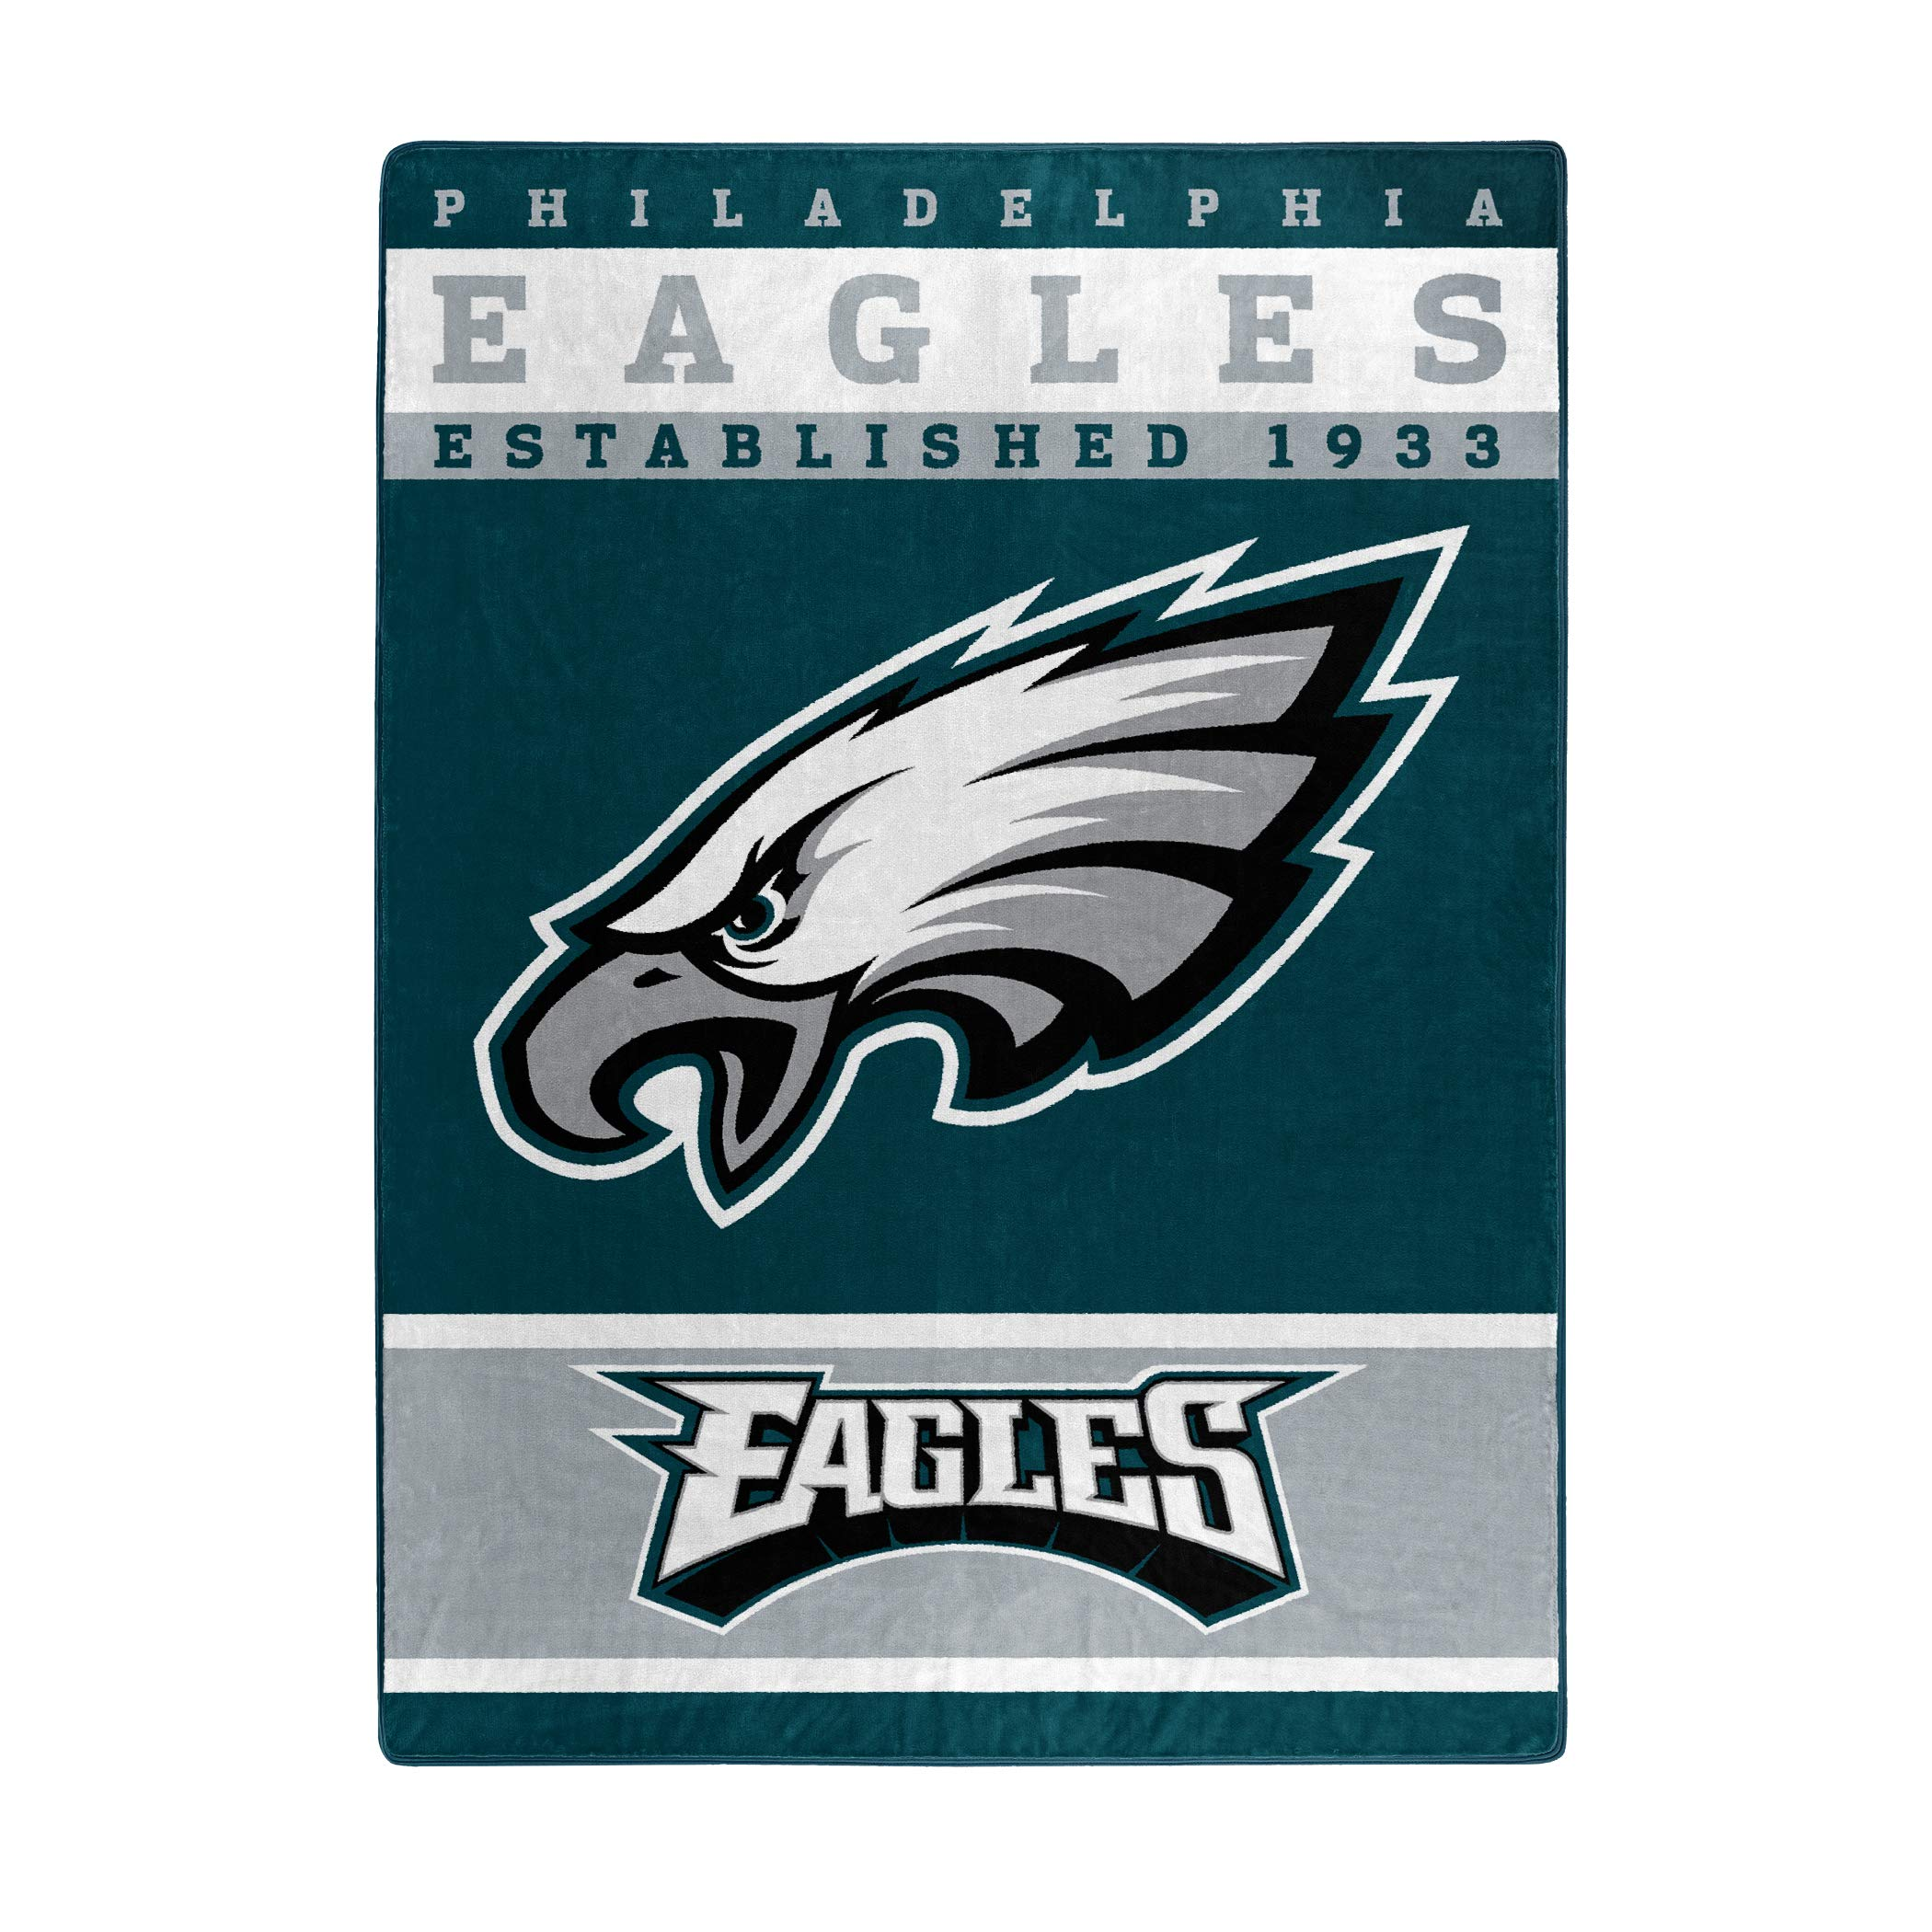 The Northwest Company Officially Licensed NFL Philadelphia Eagles 12th Man Plush Raschel Throw Blanket, 60'' x 80'', Multi Color by The Northwest Company